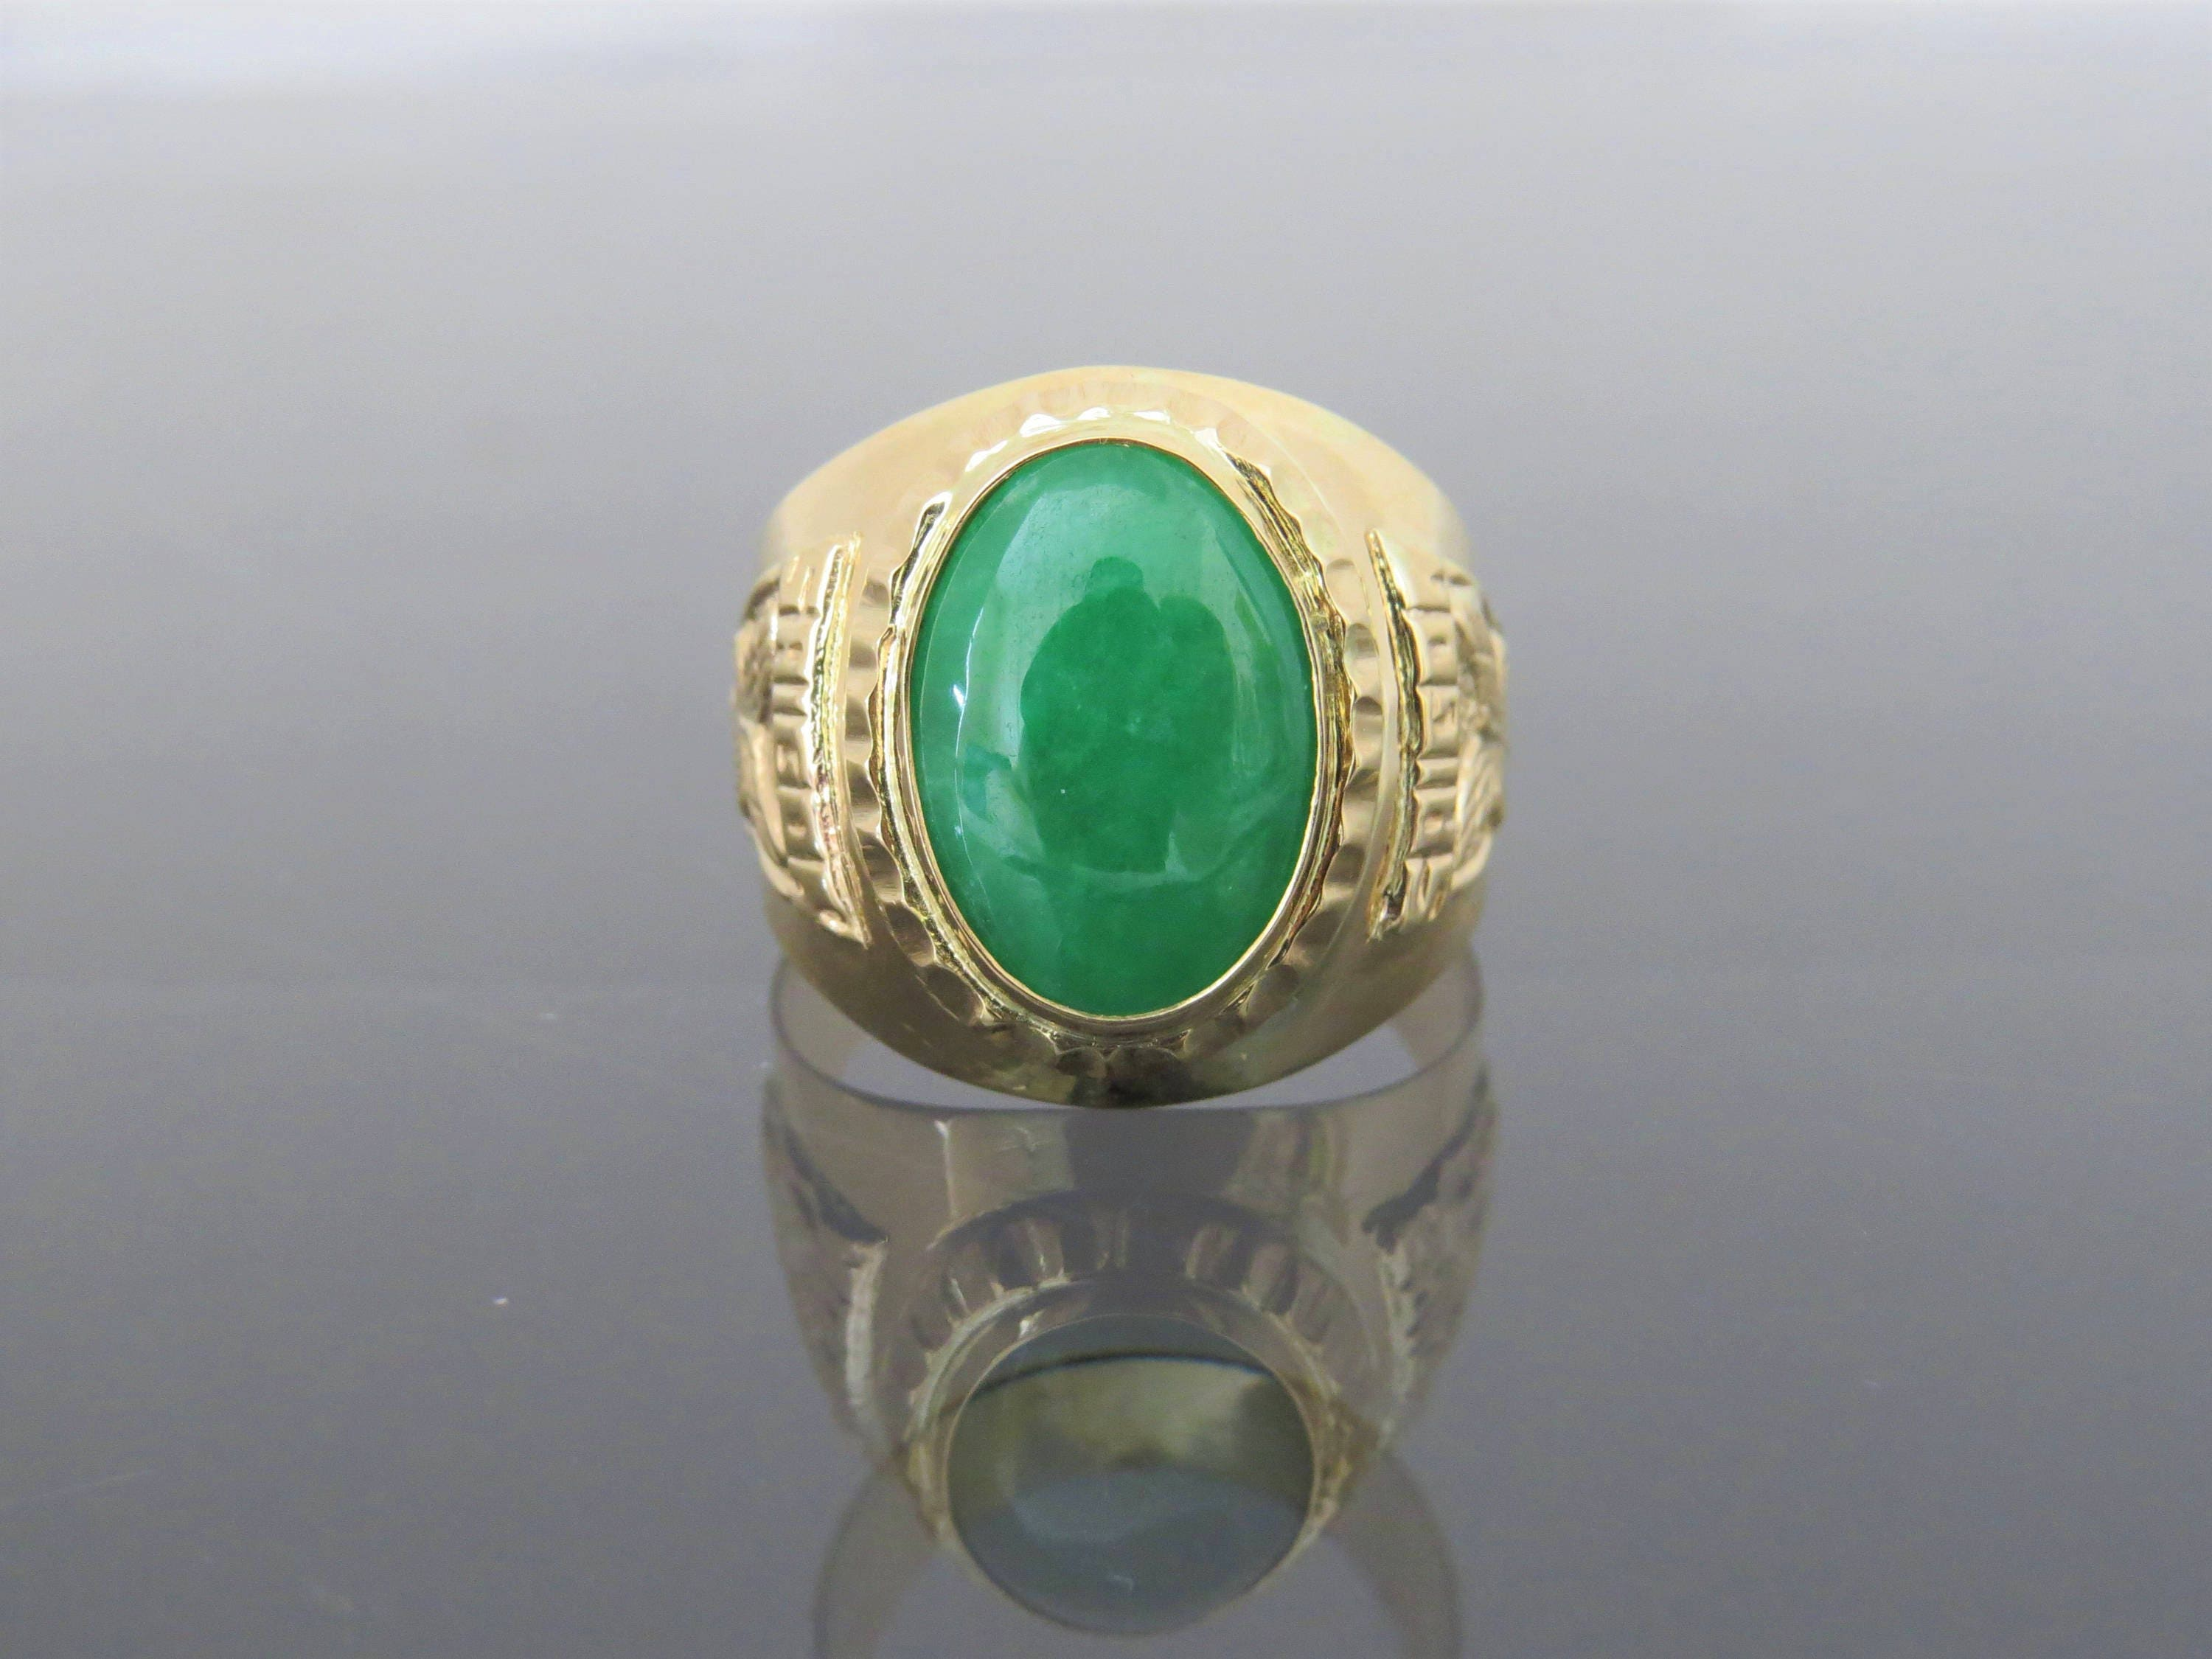 jade s oval jadeite ring emerald natural mens solid gold p size yellow green fullxfull men vintage il